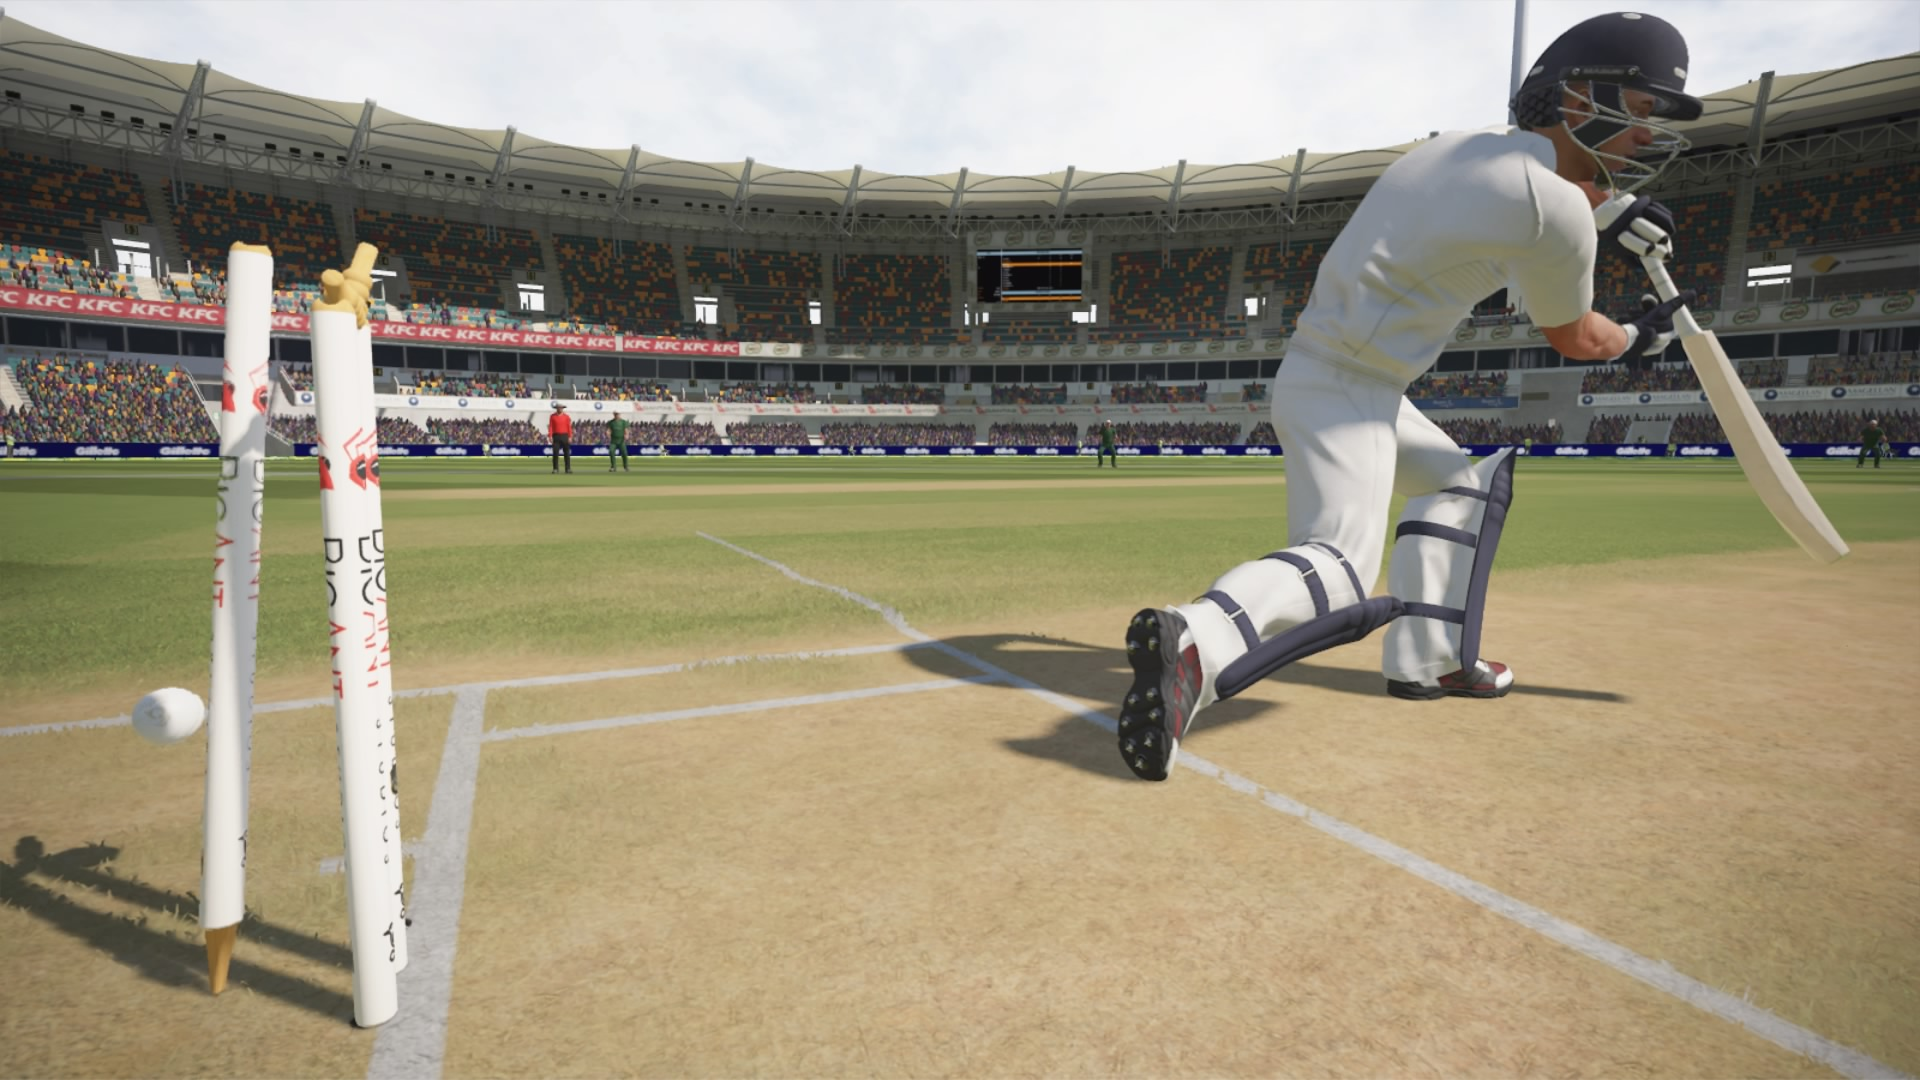 Ashes Cricket 2009, gAME demo ENG - download - gamepressure Games for iPhone, cricket